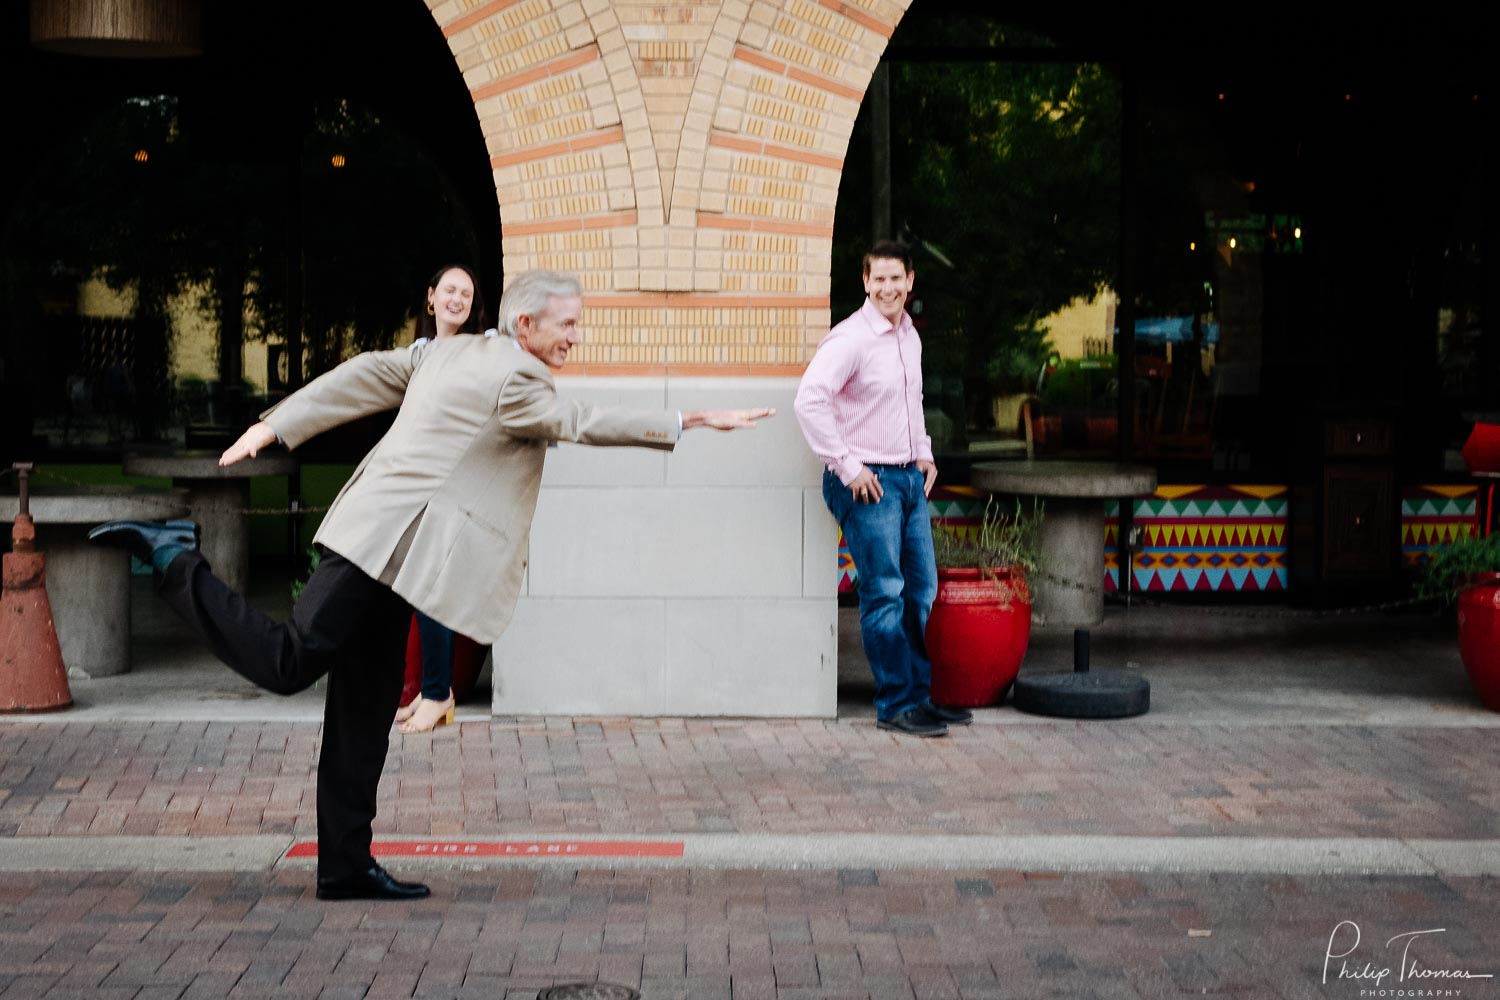 Outtake- The-Pearl-Brewery-Engagement-Session-north-of-downtown-San-Antonio-Texas-